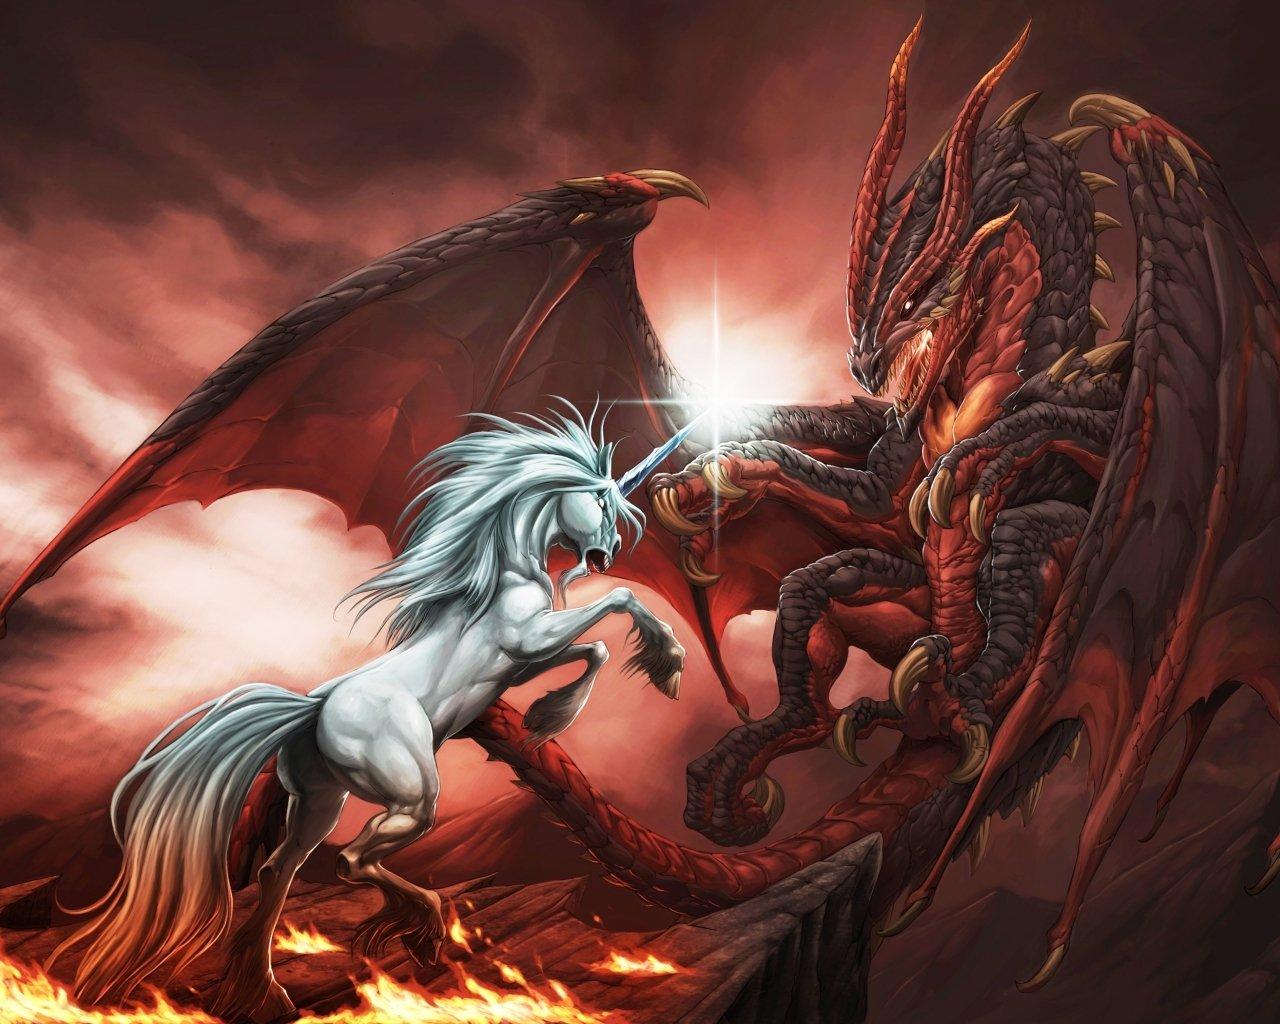 Imagenes de dragones vs